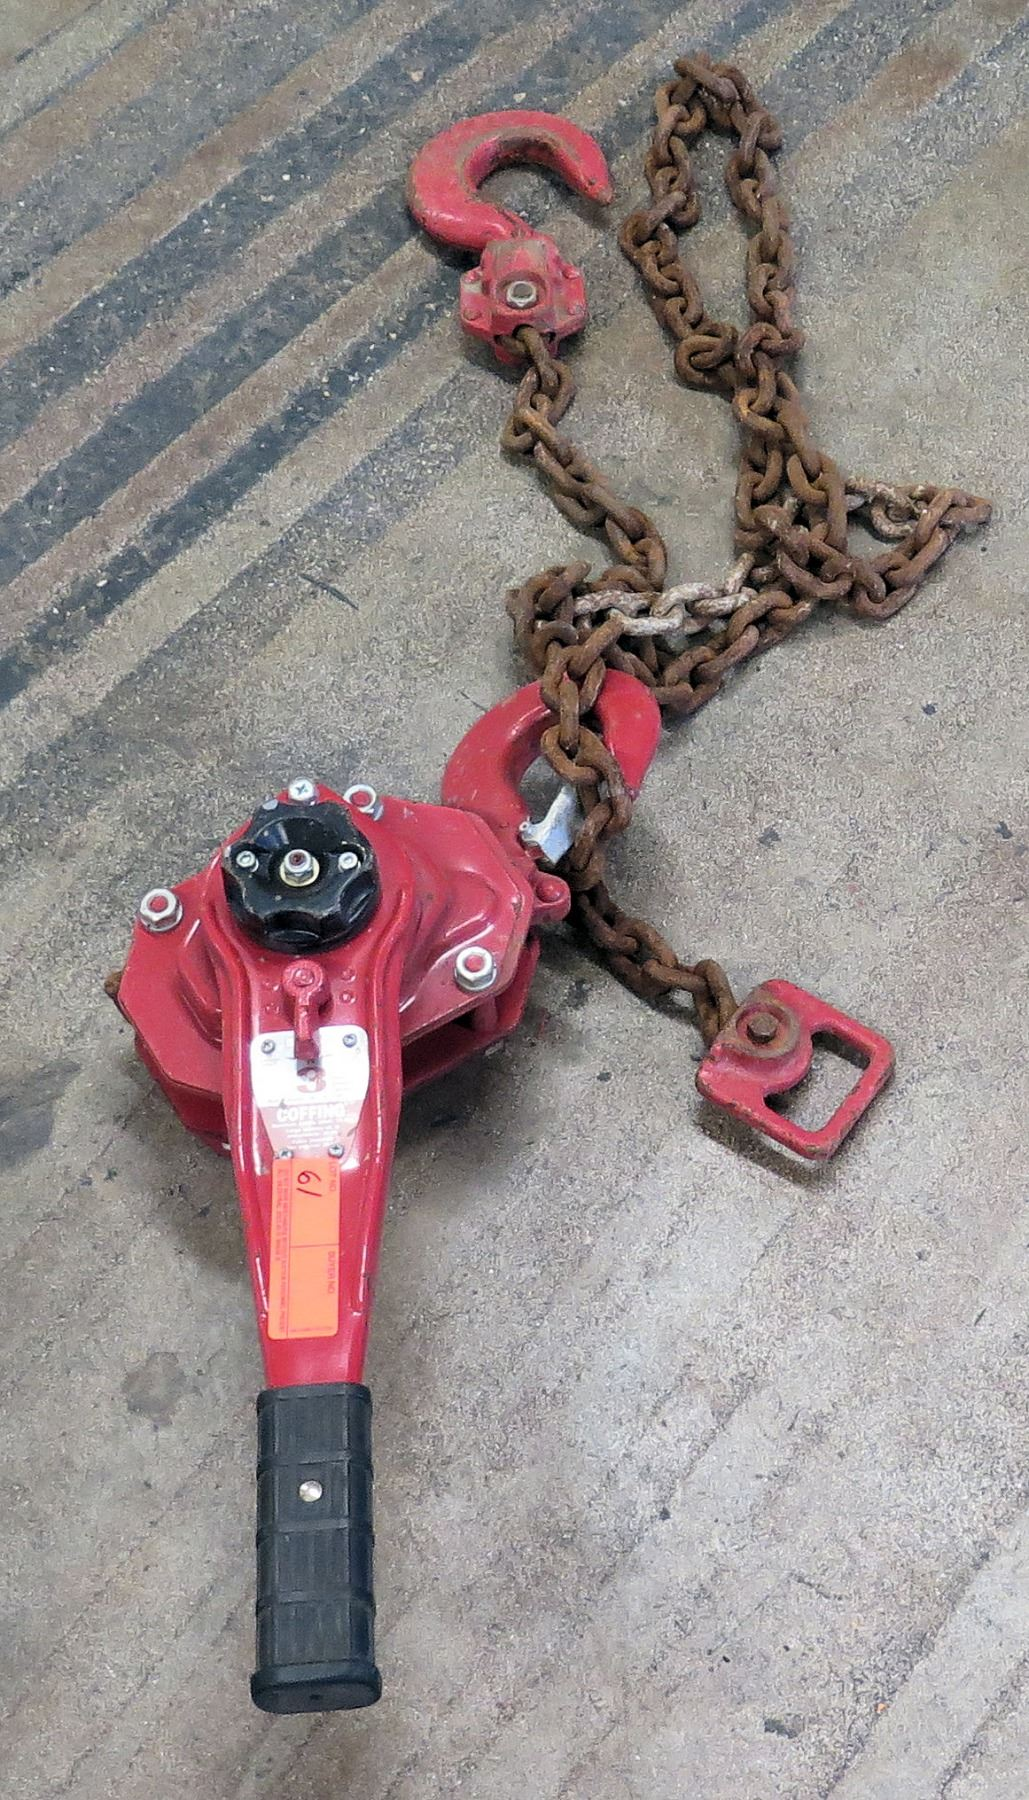 hight resolution of image 1 coffing 3 ton chain hoist red